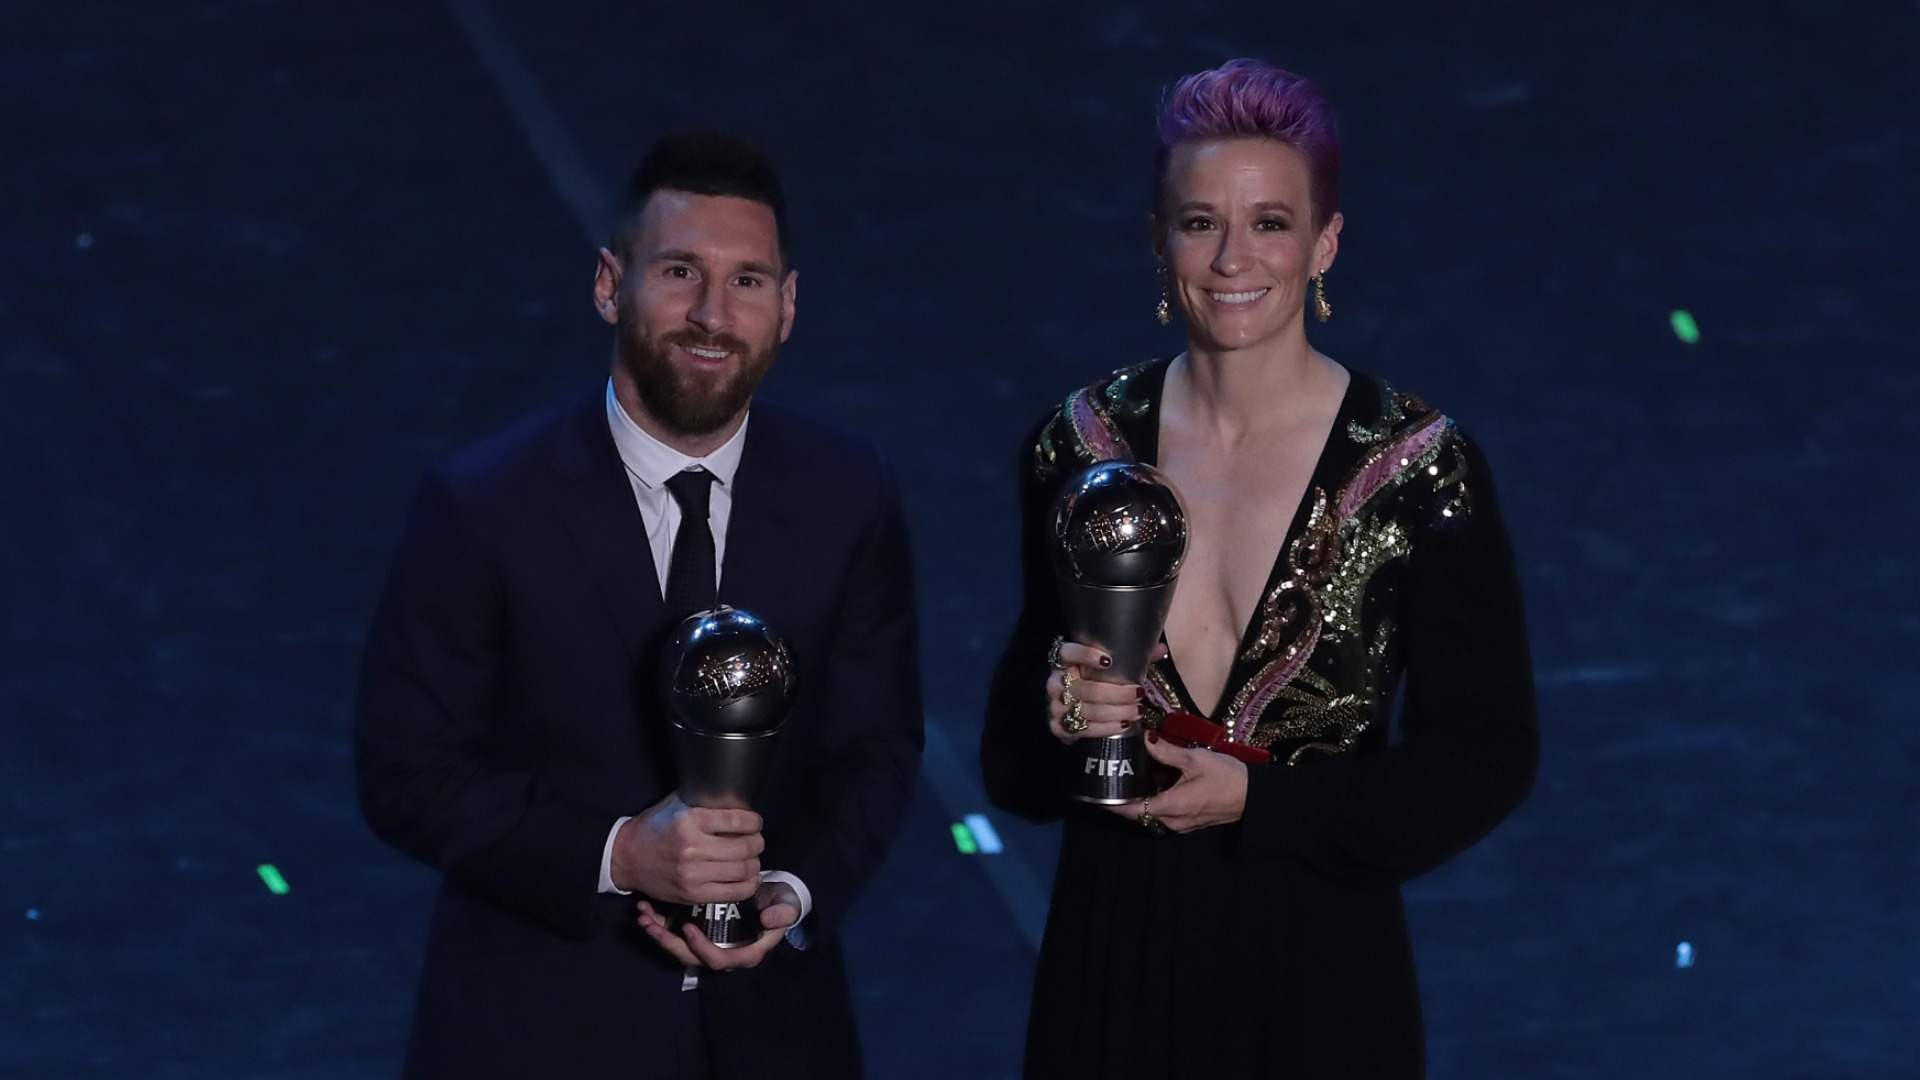 'They don't engage in anything!' - Rapinoe calls out Ronaldo & Messi for silence on racism, sexism